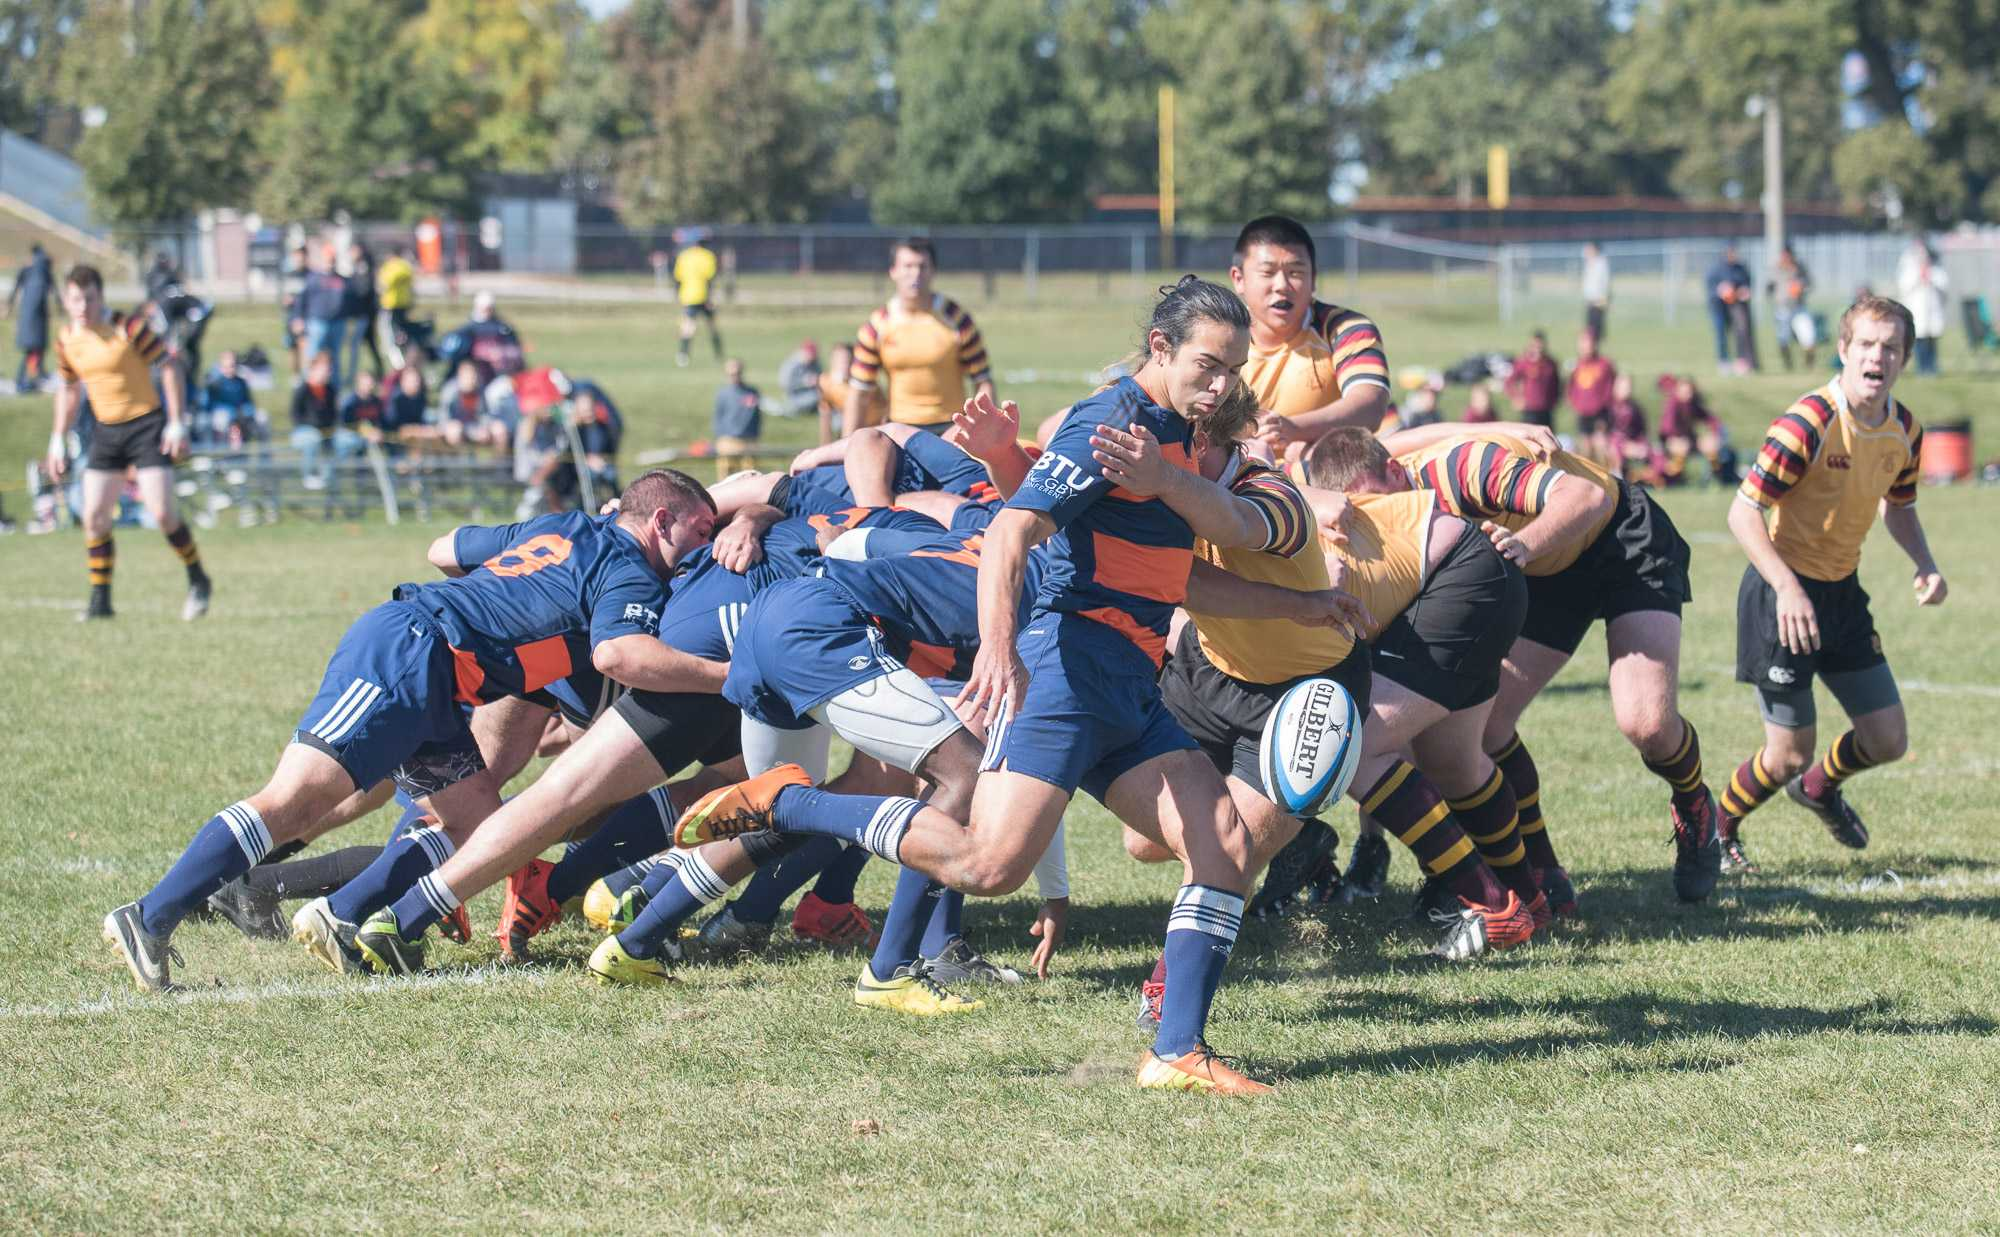 After retrieving the ball from the scrum, Mario Lozano drop kicks the ball down the field during the game against Minnesota at the Complex Fields on Saturday, October 17.